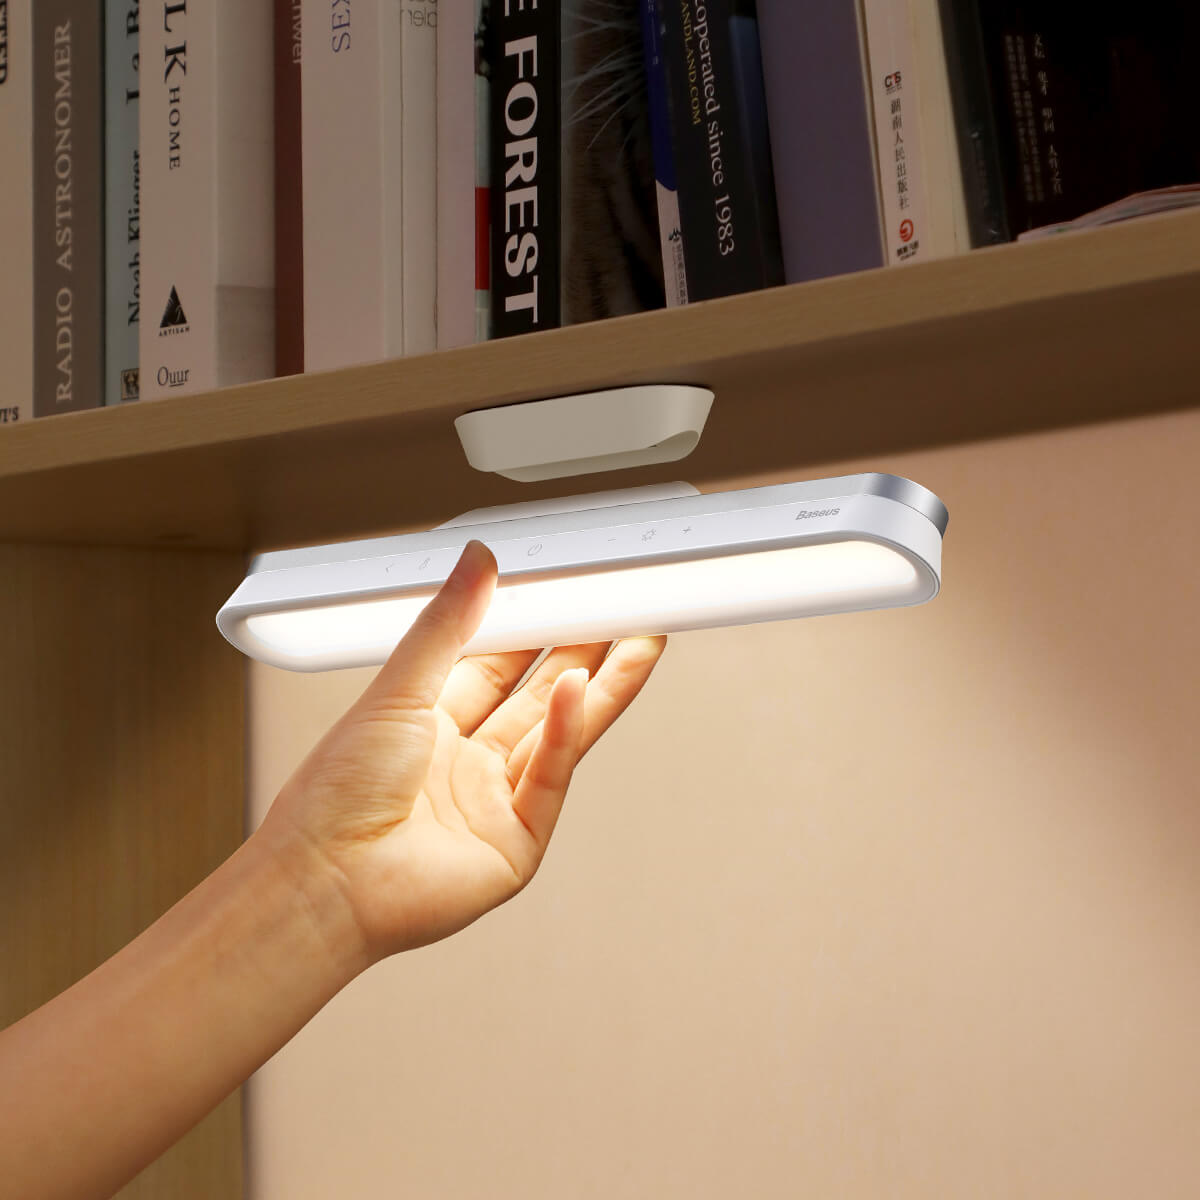 Baseus Magnetic Stepless Dimming Desk Lamp Pro - магнитна настолна LED лампа (бял) - 2